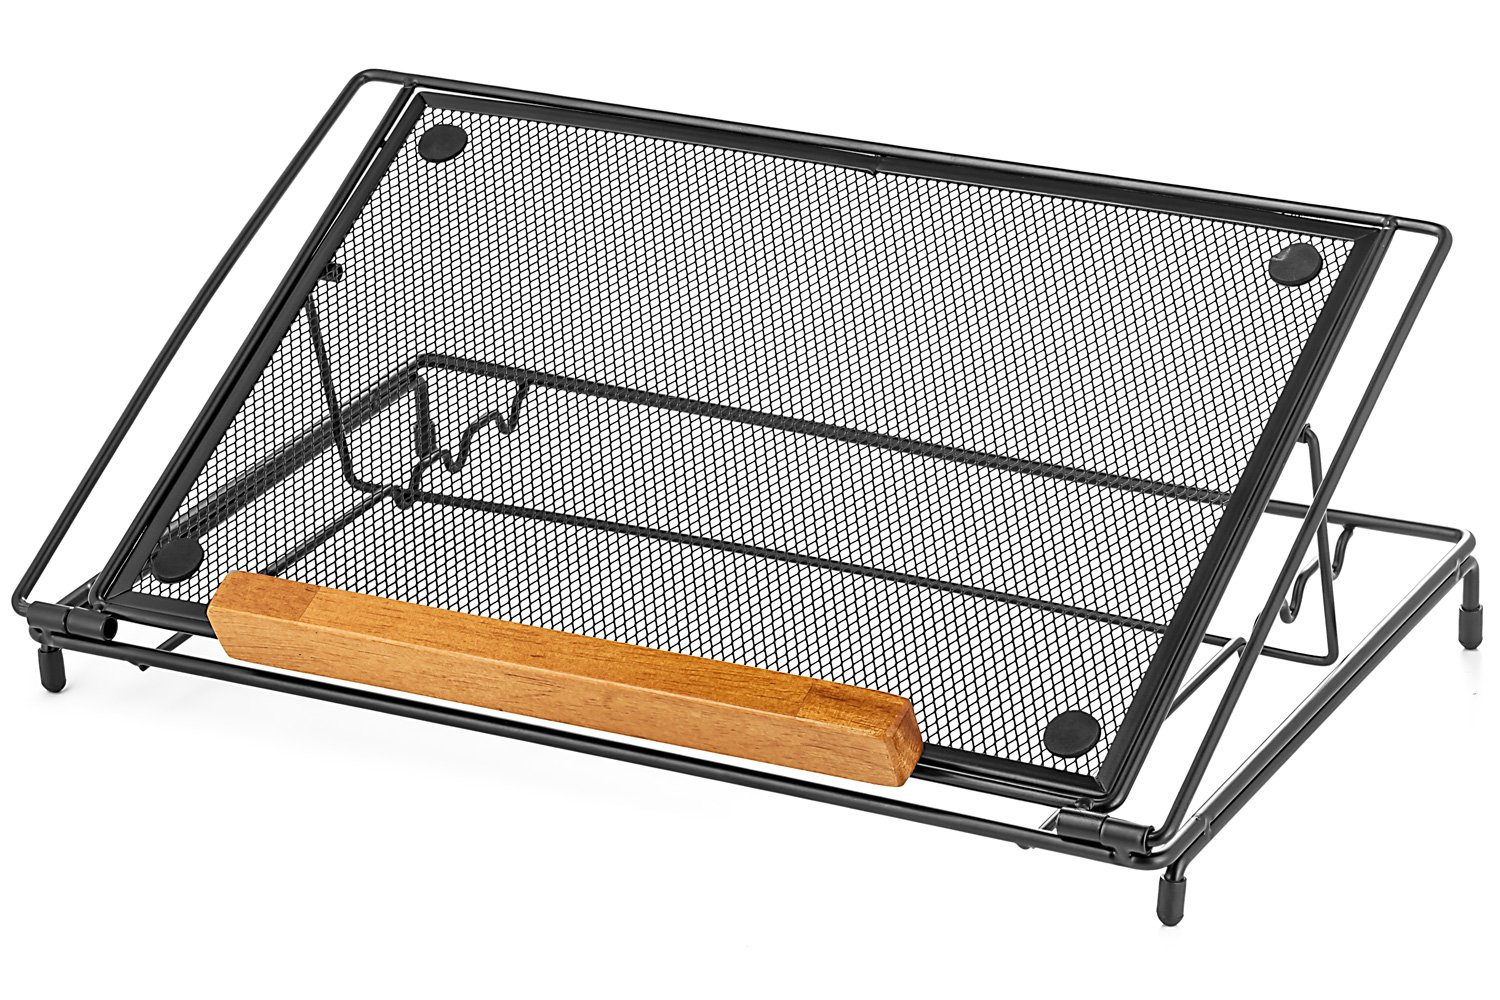 """Halter Mesh Ventilated Adjustable Laptop Stand for Laptop/Notebook/iPad/Tablet and More - 9"""" X 14"""" - Black"""